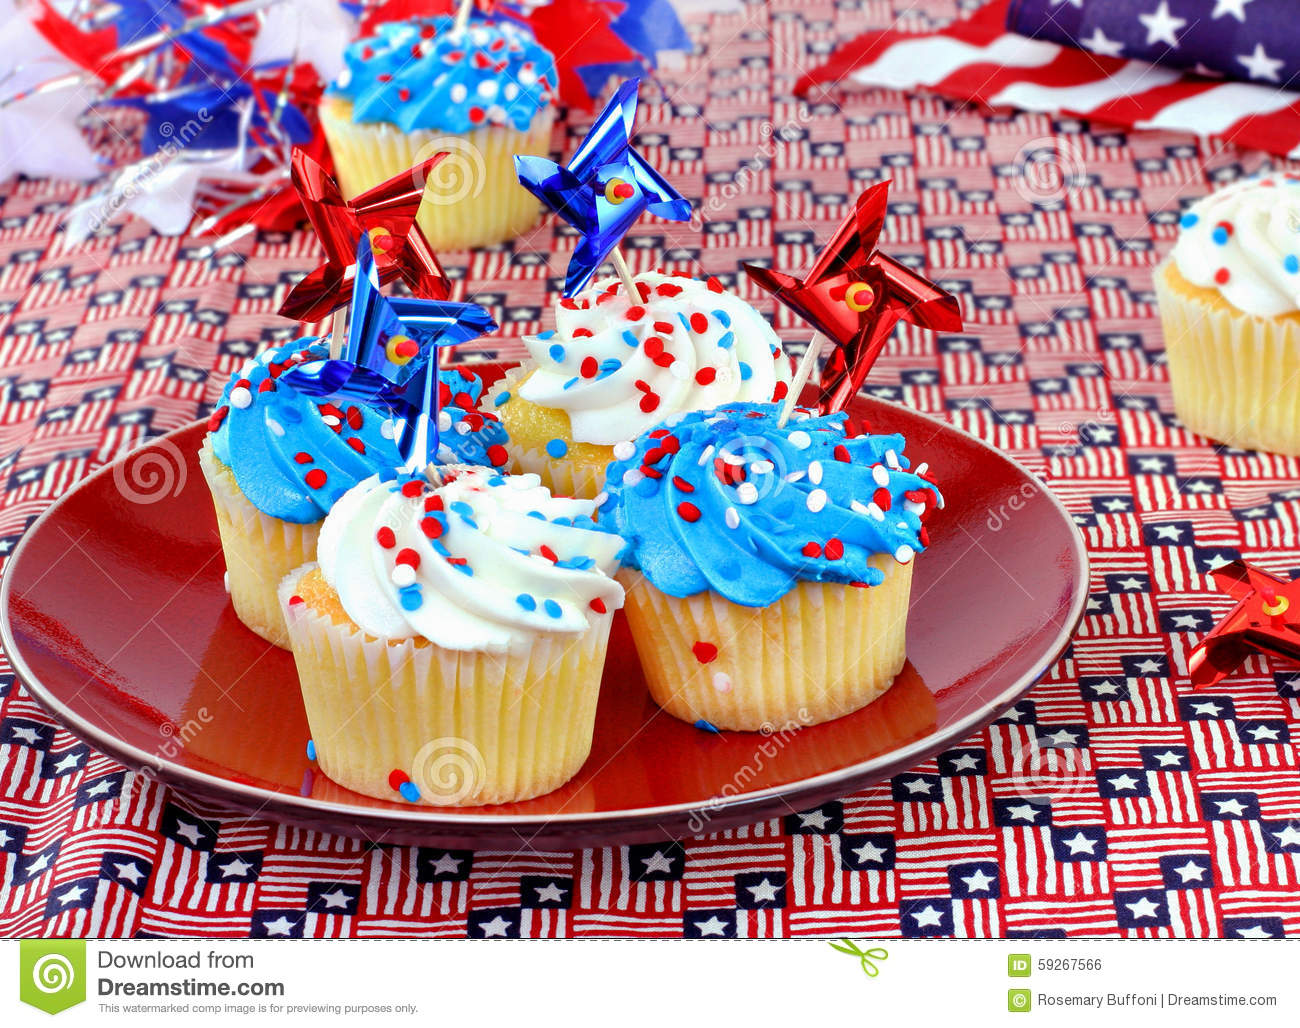 4th Blue Cupcakes Decorations Festive July Memorial Red Veterans White ...